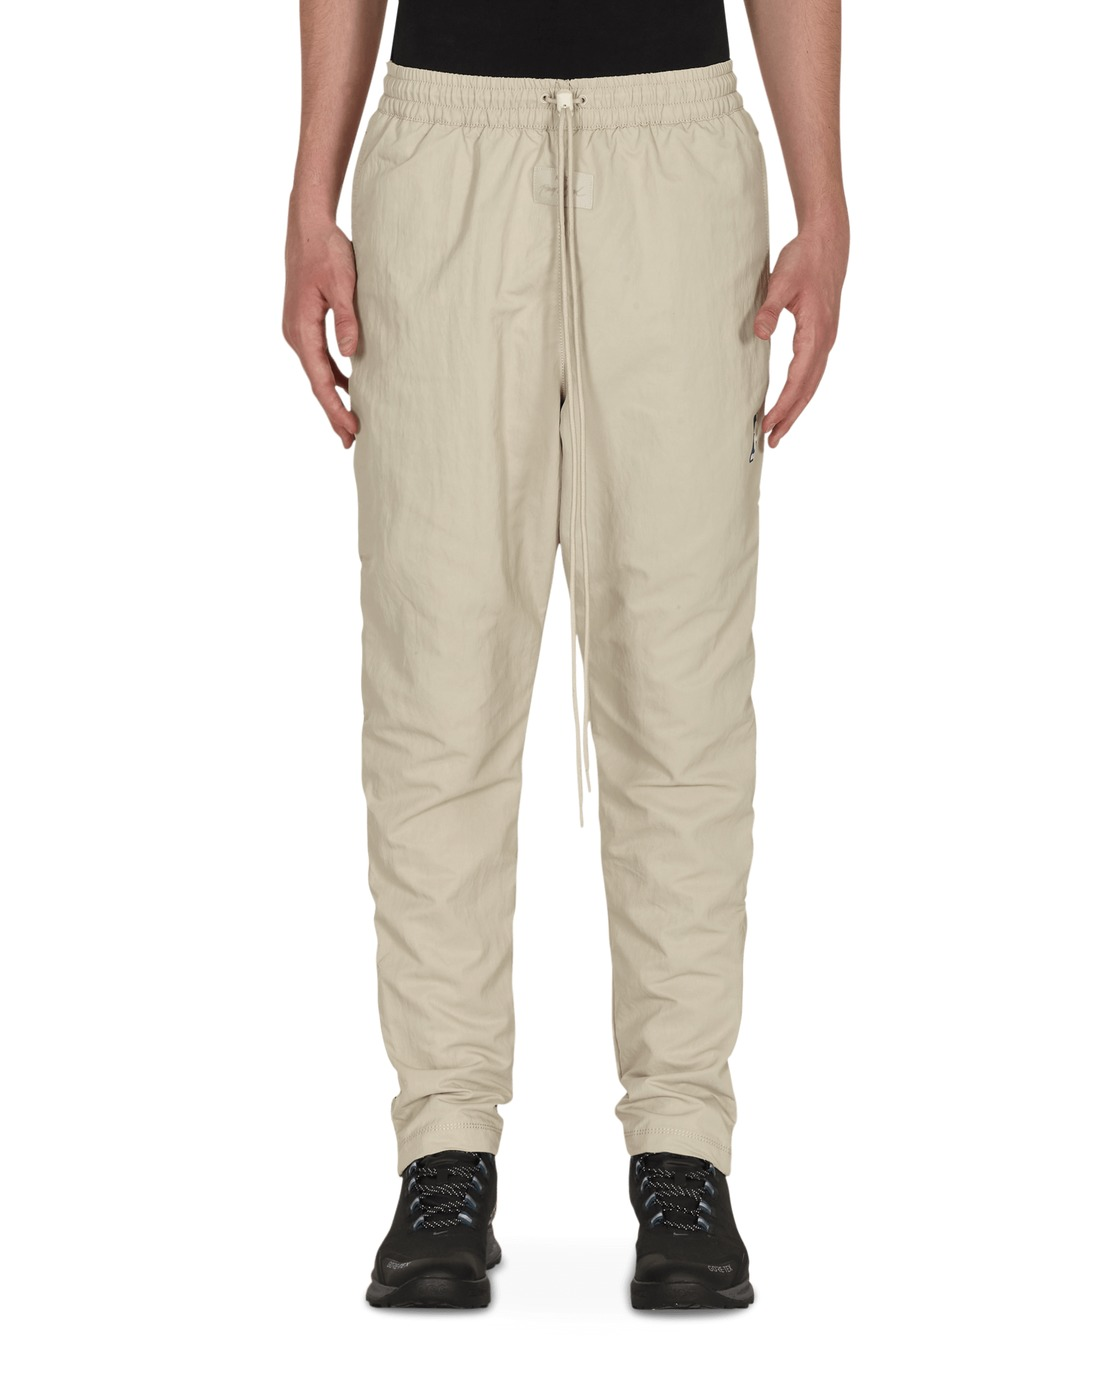 Nike Special Project Jerry Lorenzo Warm Up Pants String